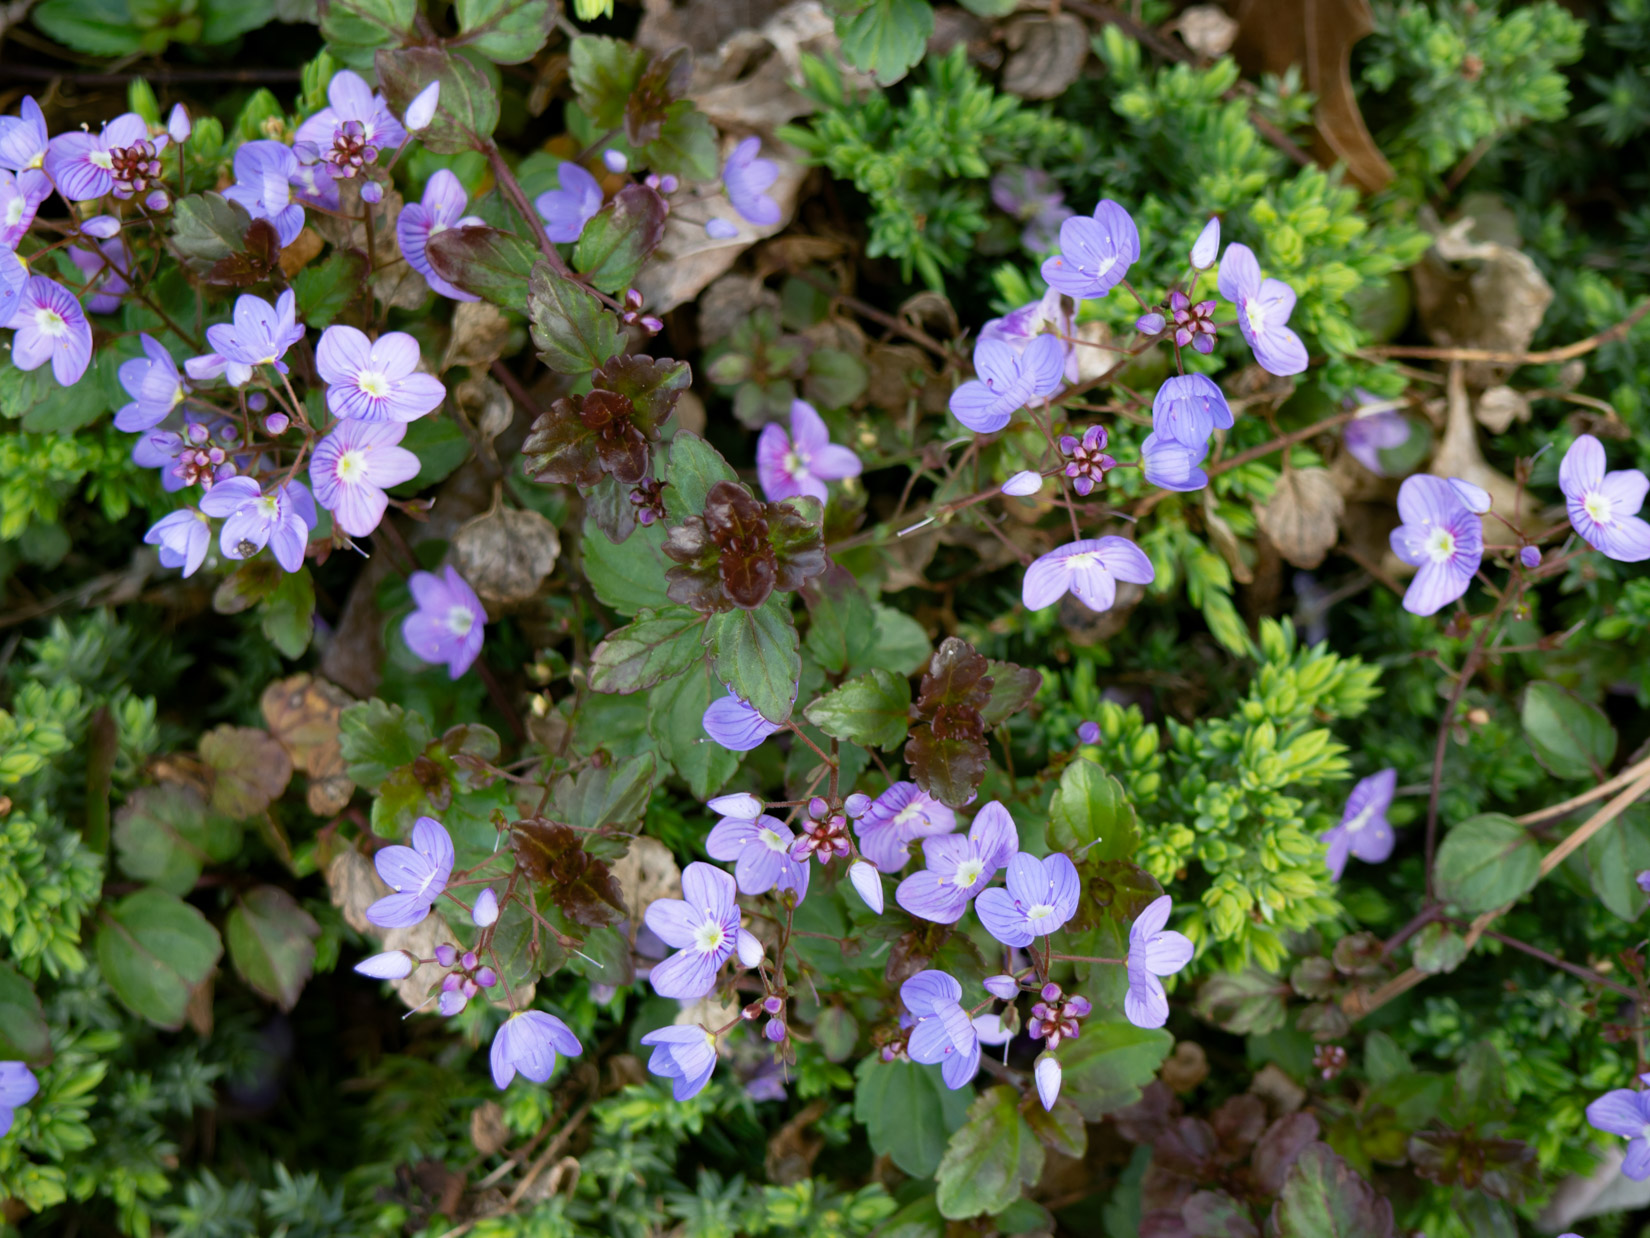 Purple Flowers and Leaves in Garden